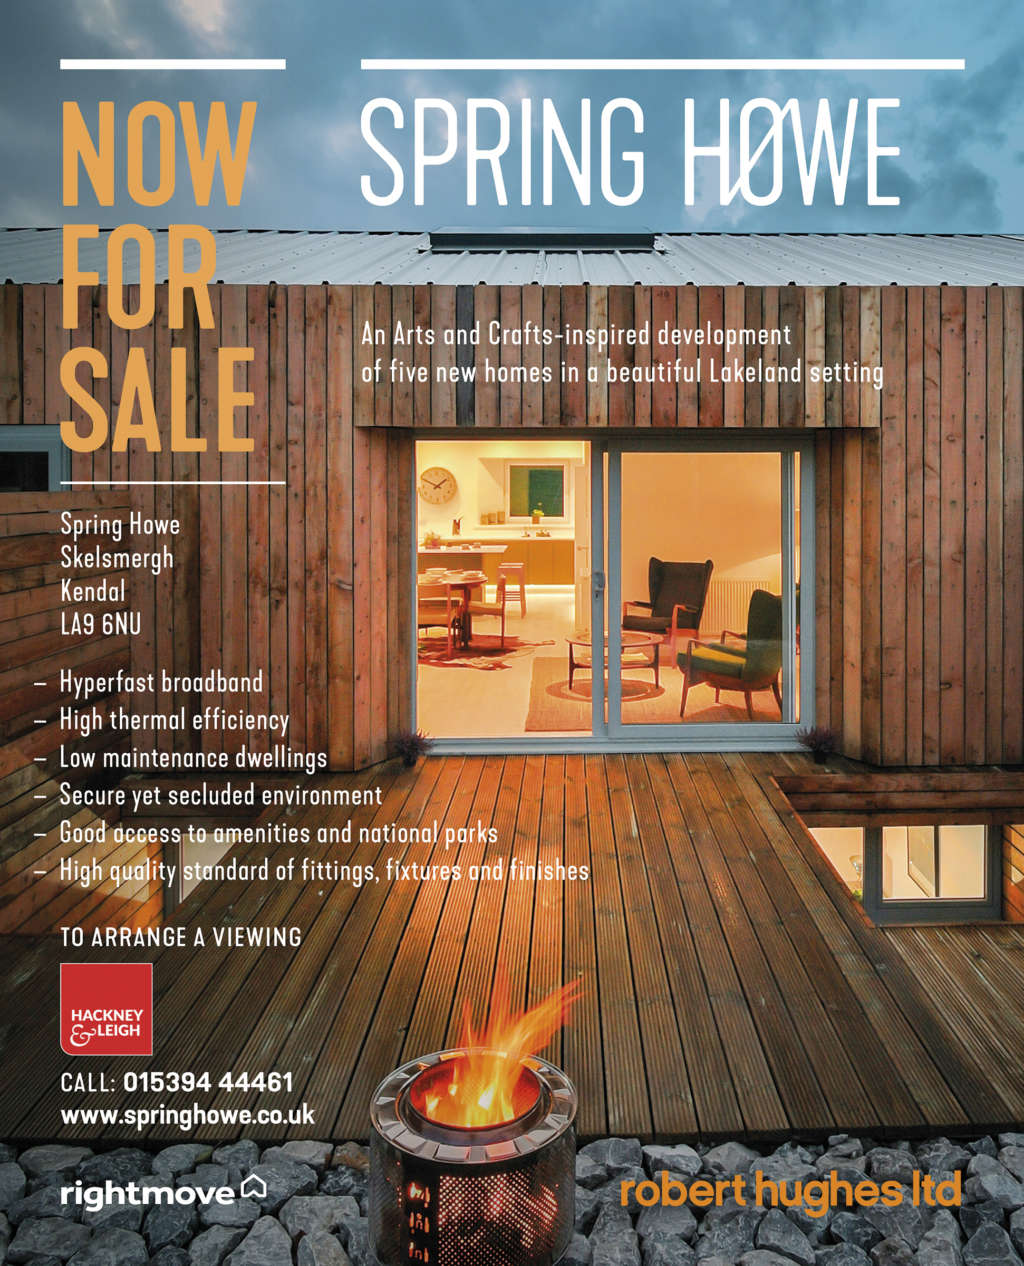 Spring-Howe-ad